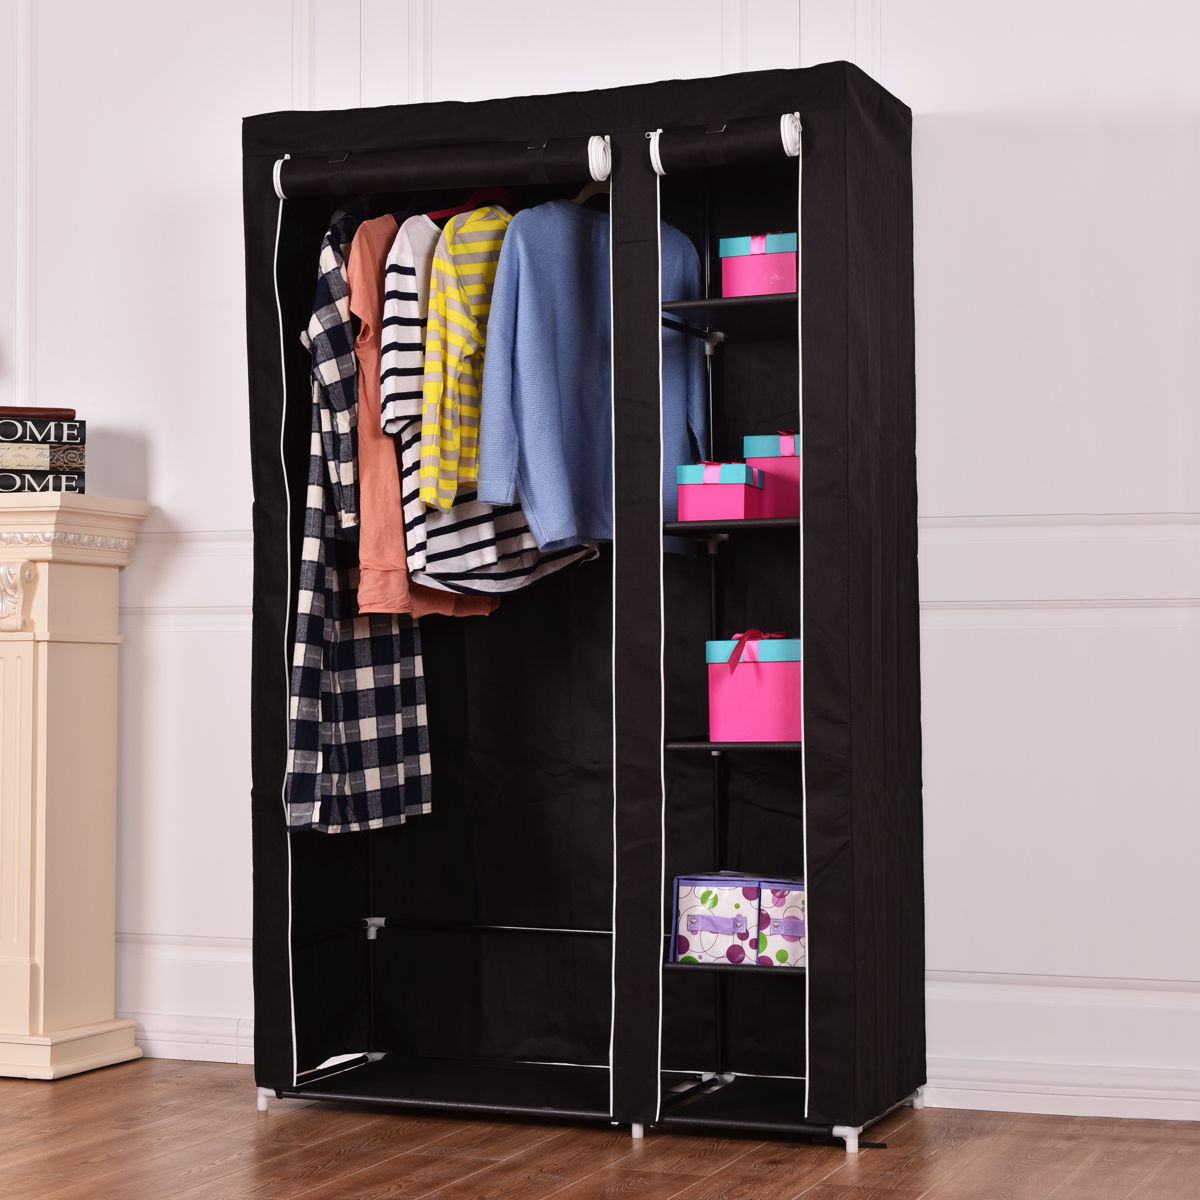 Costway 69'' Portable Closet Storage Organizer Clothes Wardrobe Shoe Rack W/6 Shelf Black